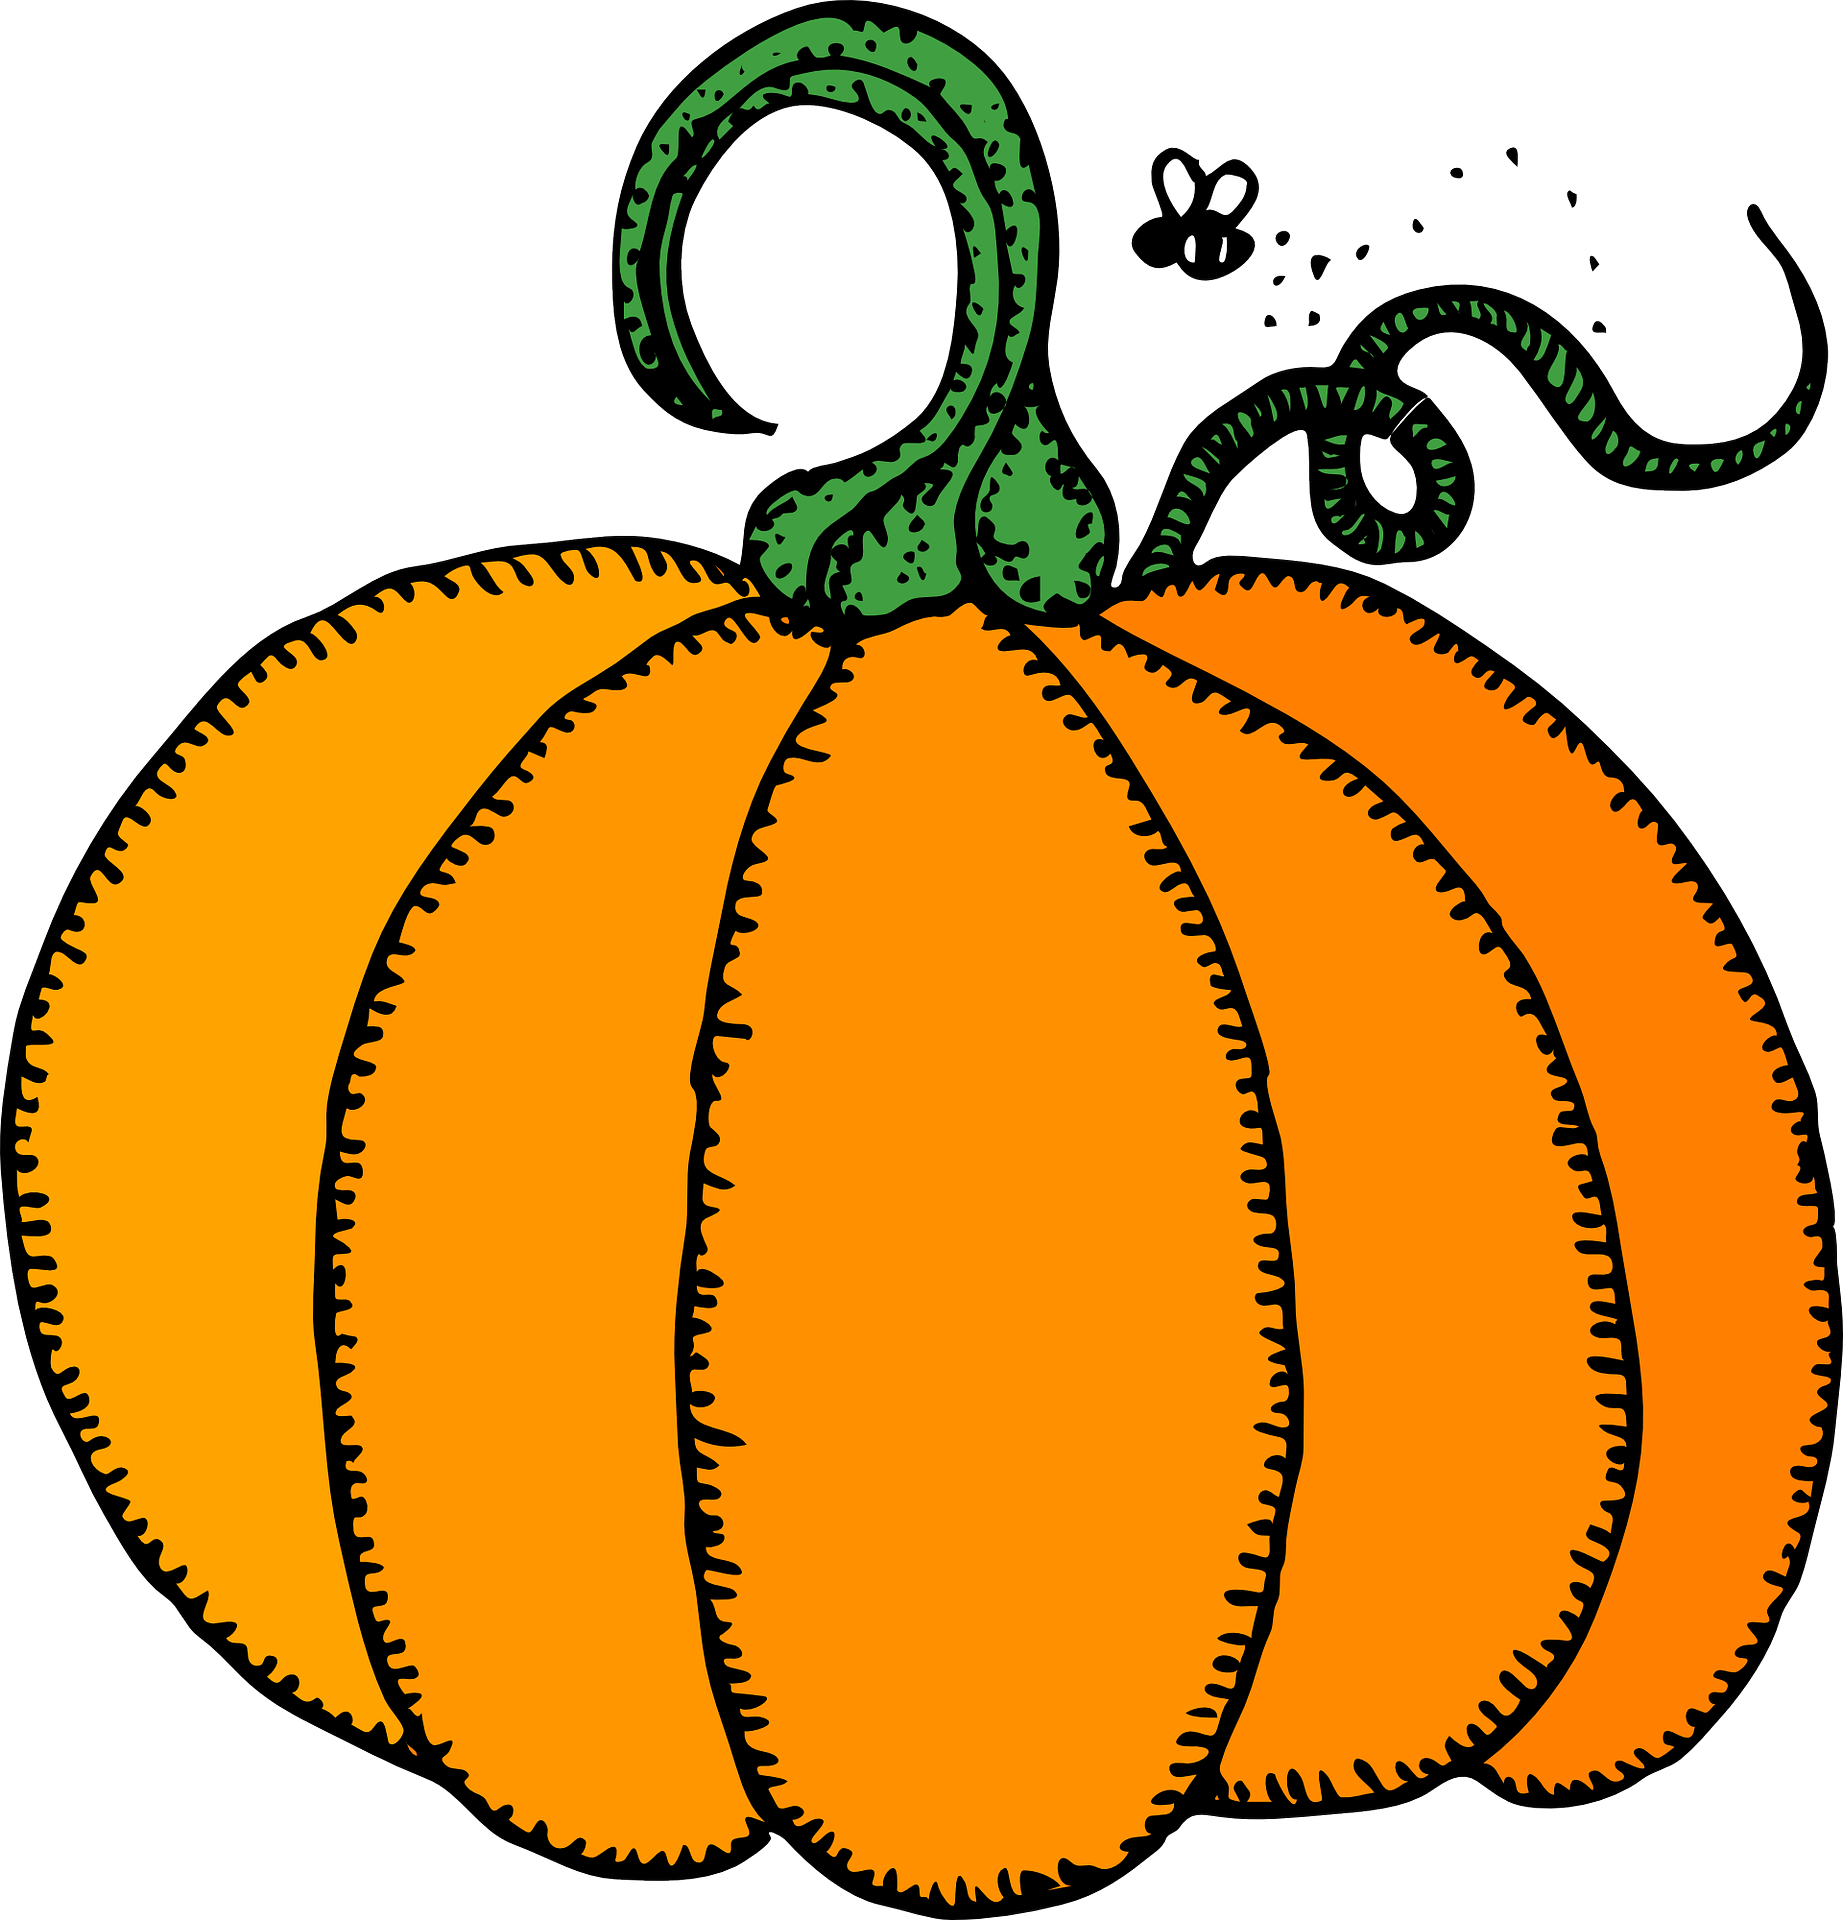 Pumpkin patch clipart signs svg freeuse download Kennedy's Pumpkin Patch special offer - The Lime Kiln svg freeuse download